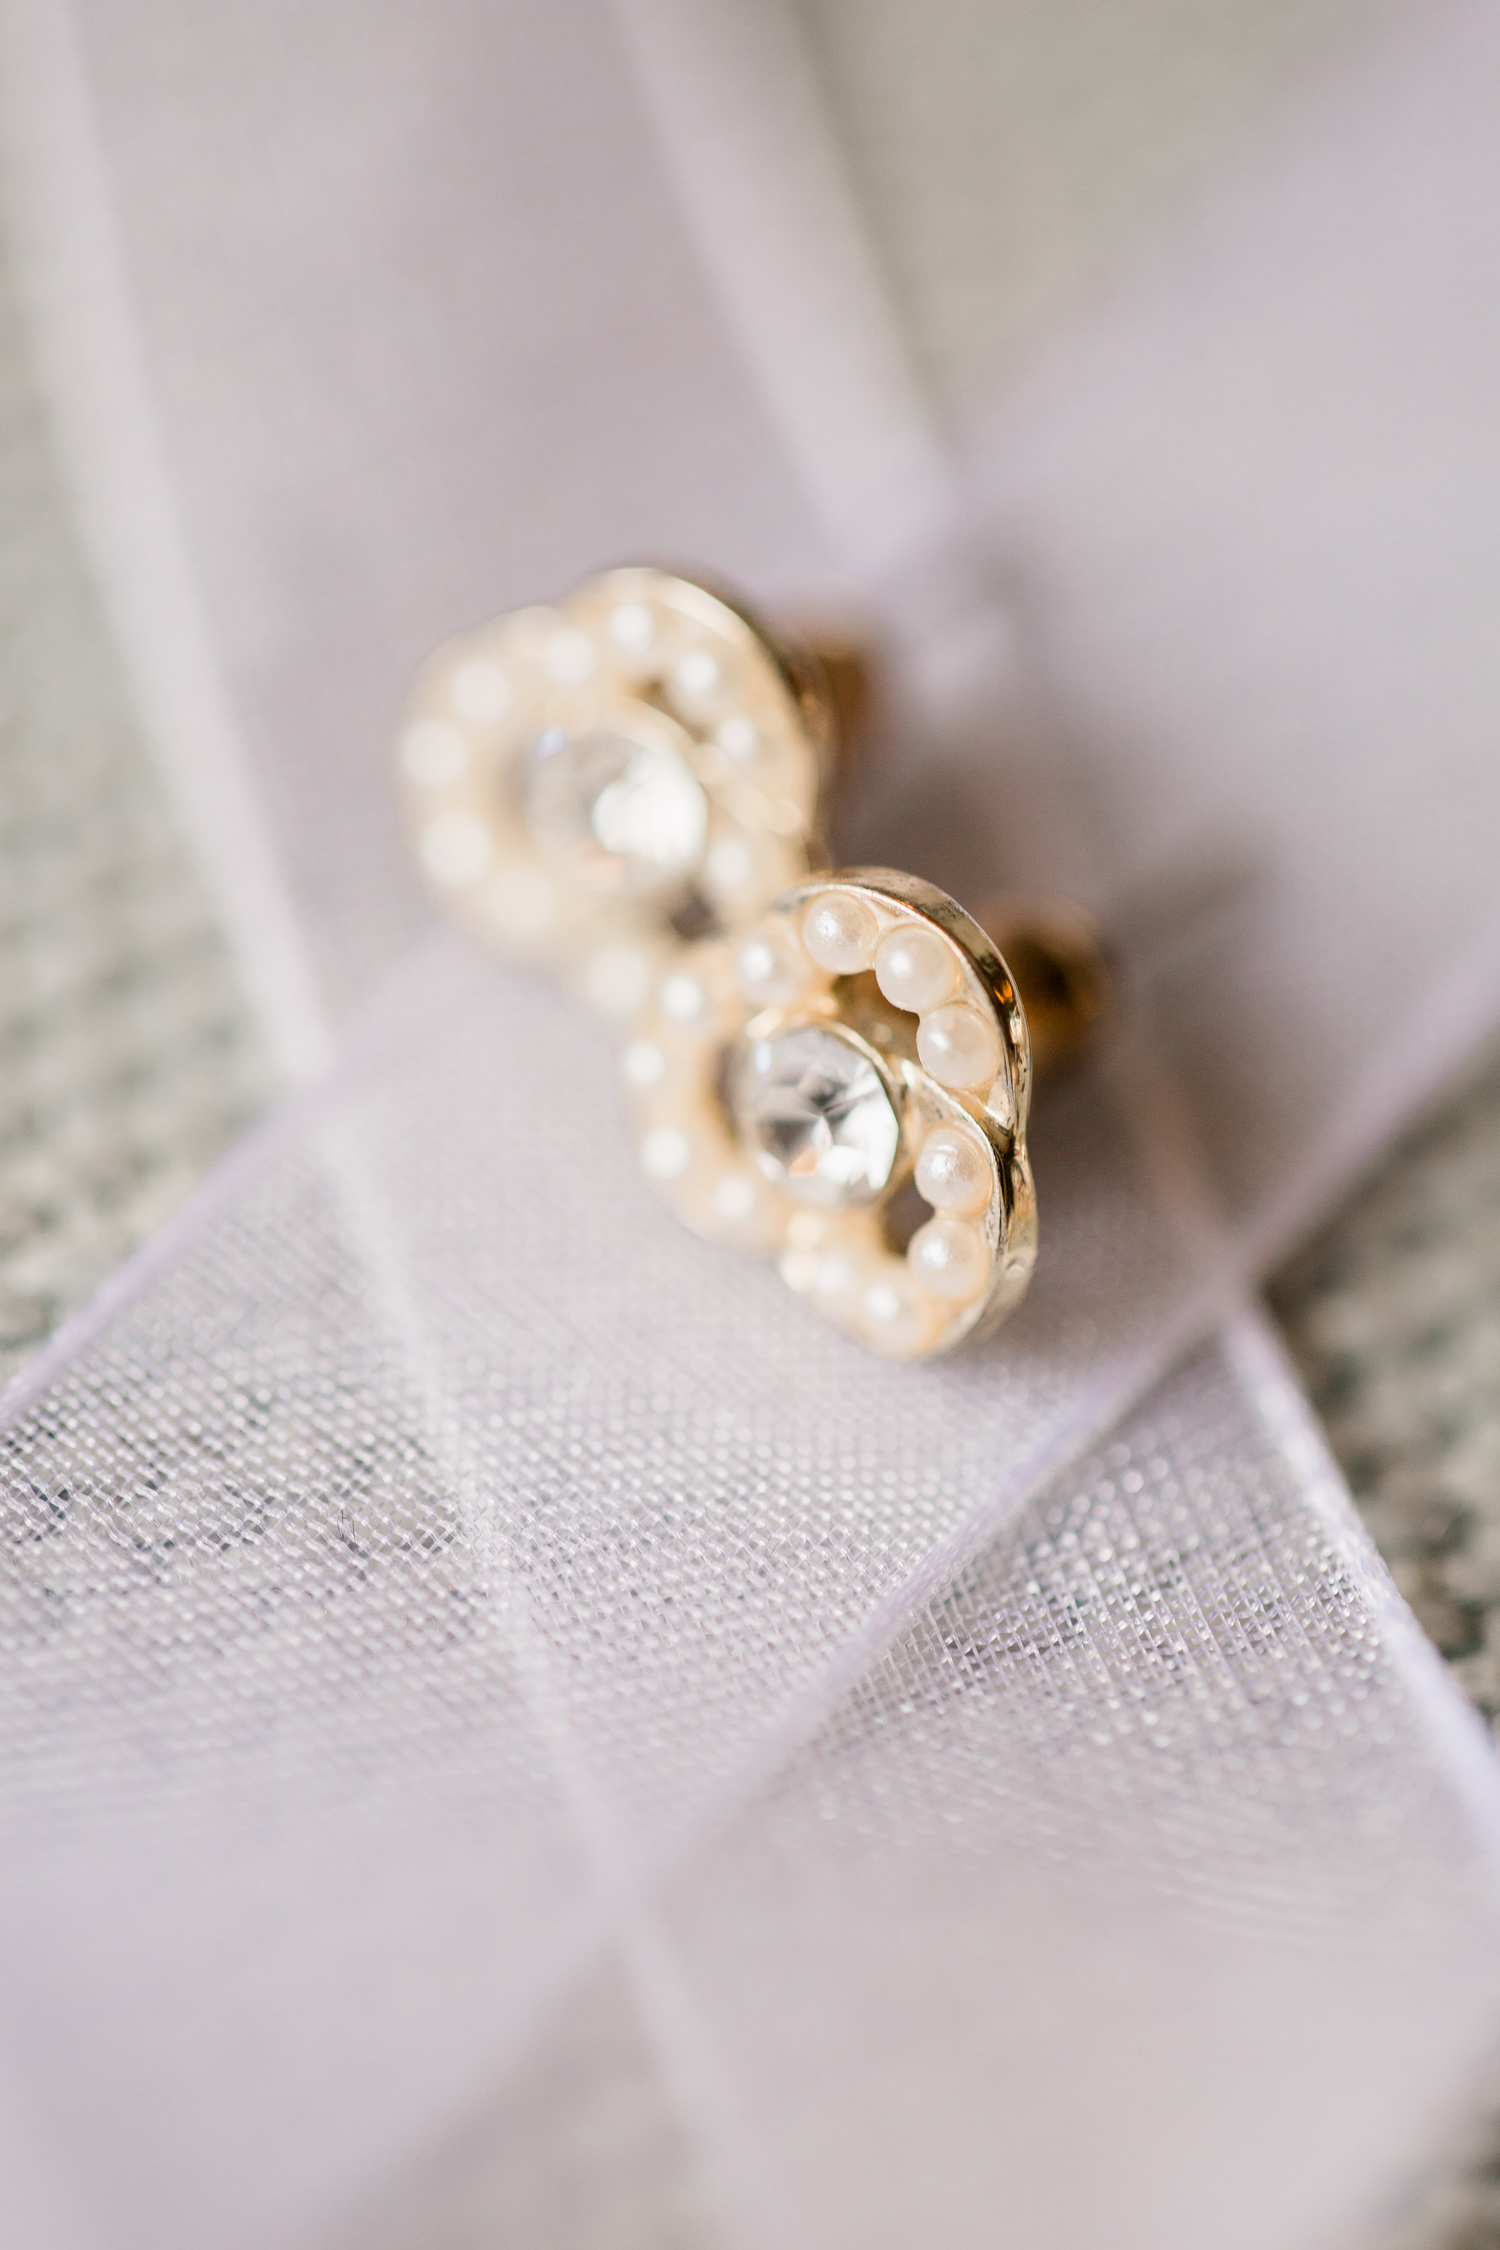 Downtown Knoxville Wedding Venue // Central Avenue Reception // Wedding Earrings